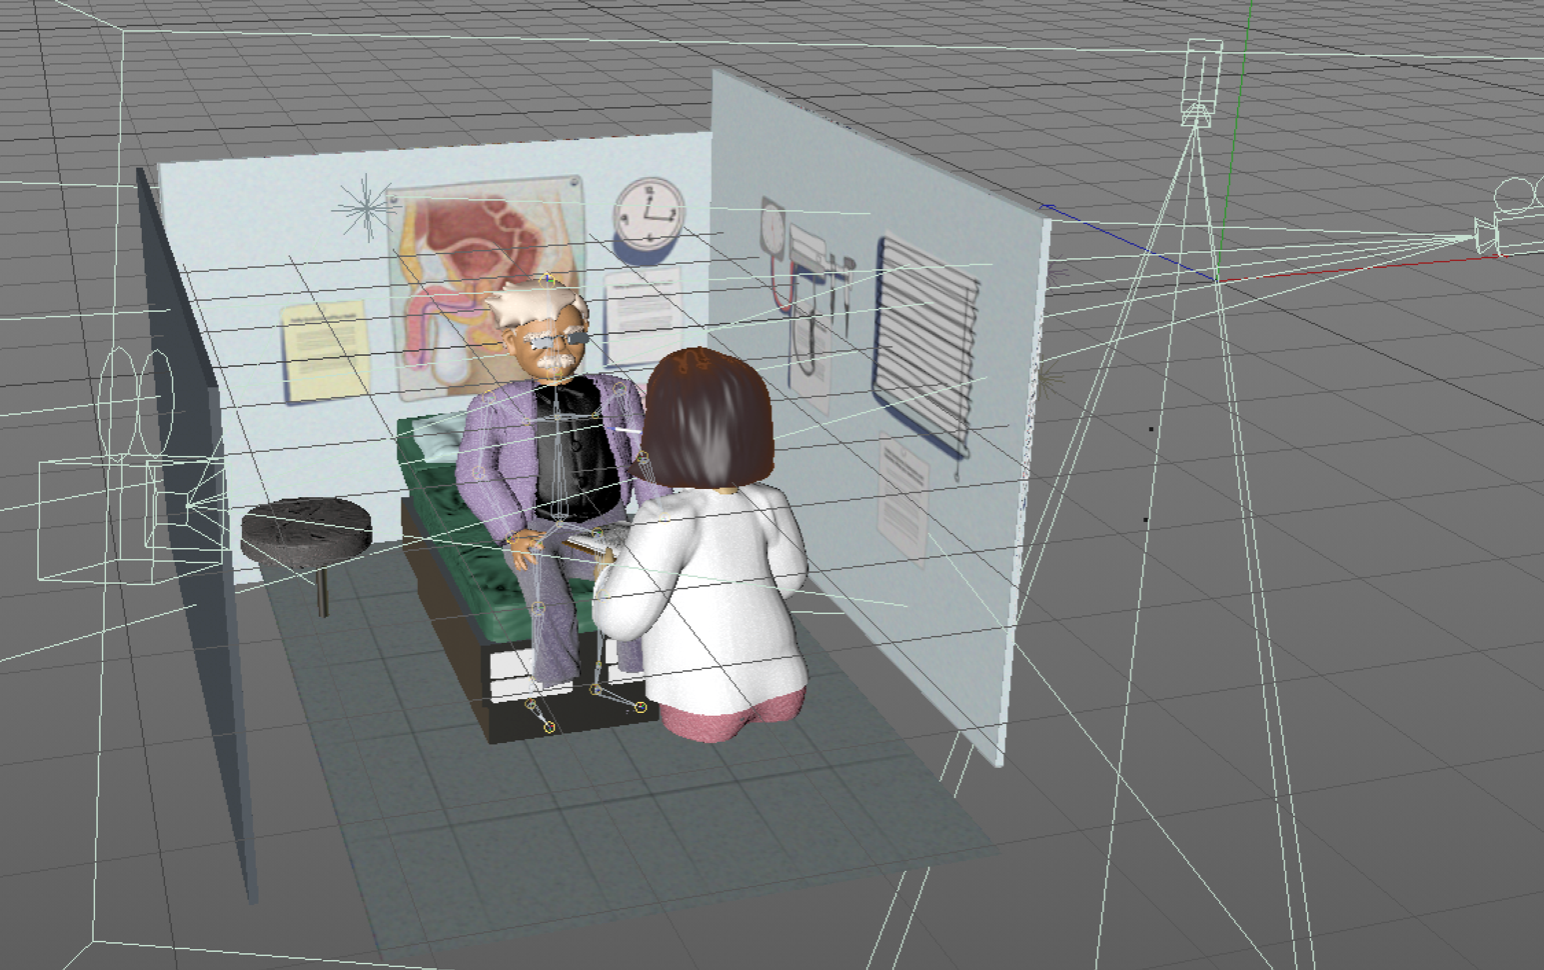 Frailty Animation Process: Rigging & Animating Characters